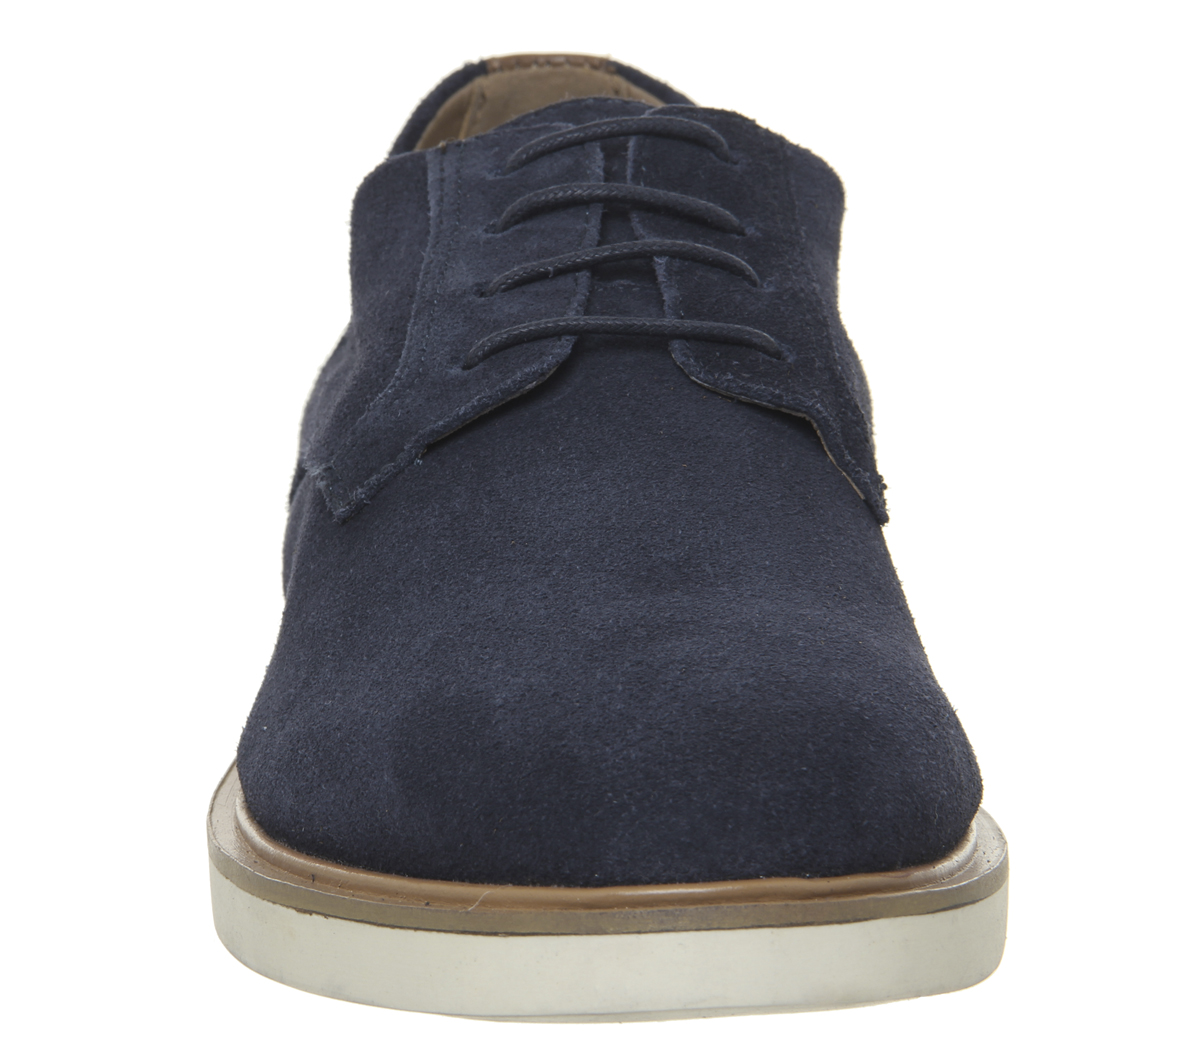 Mens-Office-Item-Derby-Shoes-Navy-Suede-Casual-Shoes thumbnail 5